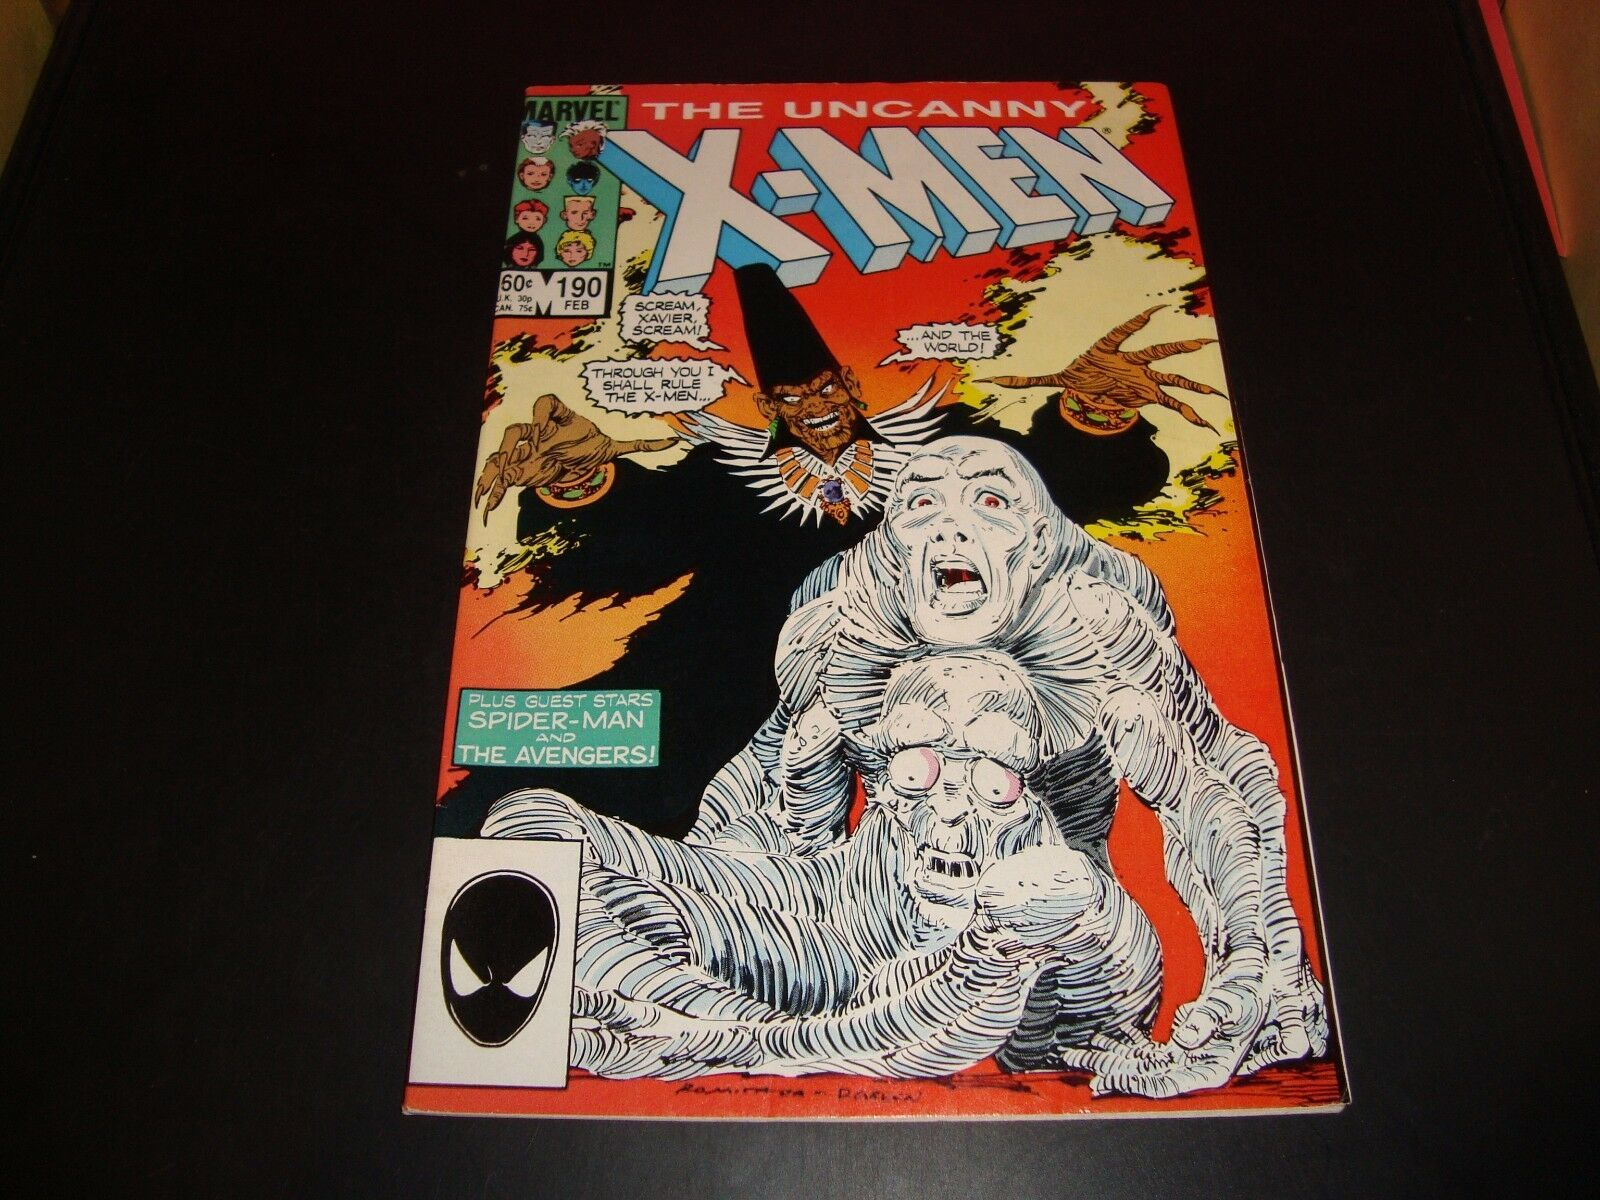 Uncanny X-Men #190 1985 Marvel Comic Book Spider-Man & Avengers FN Condition 7.0